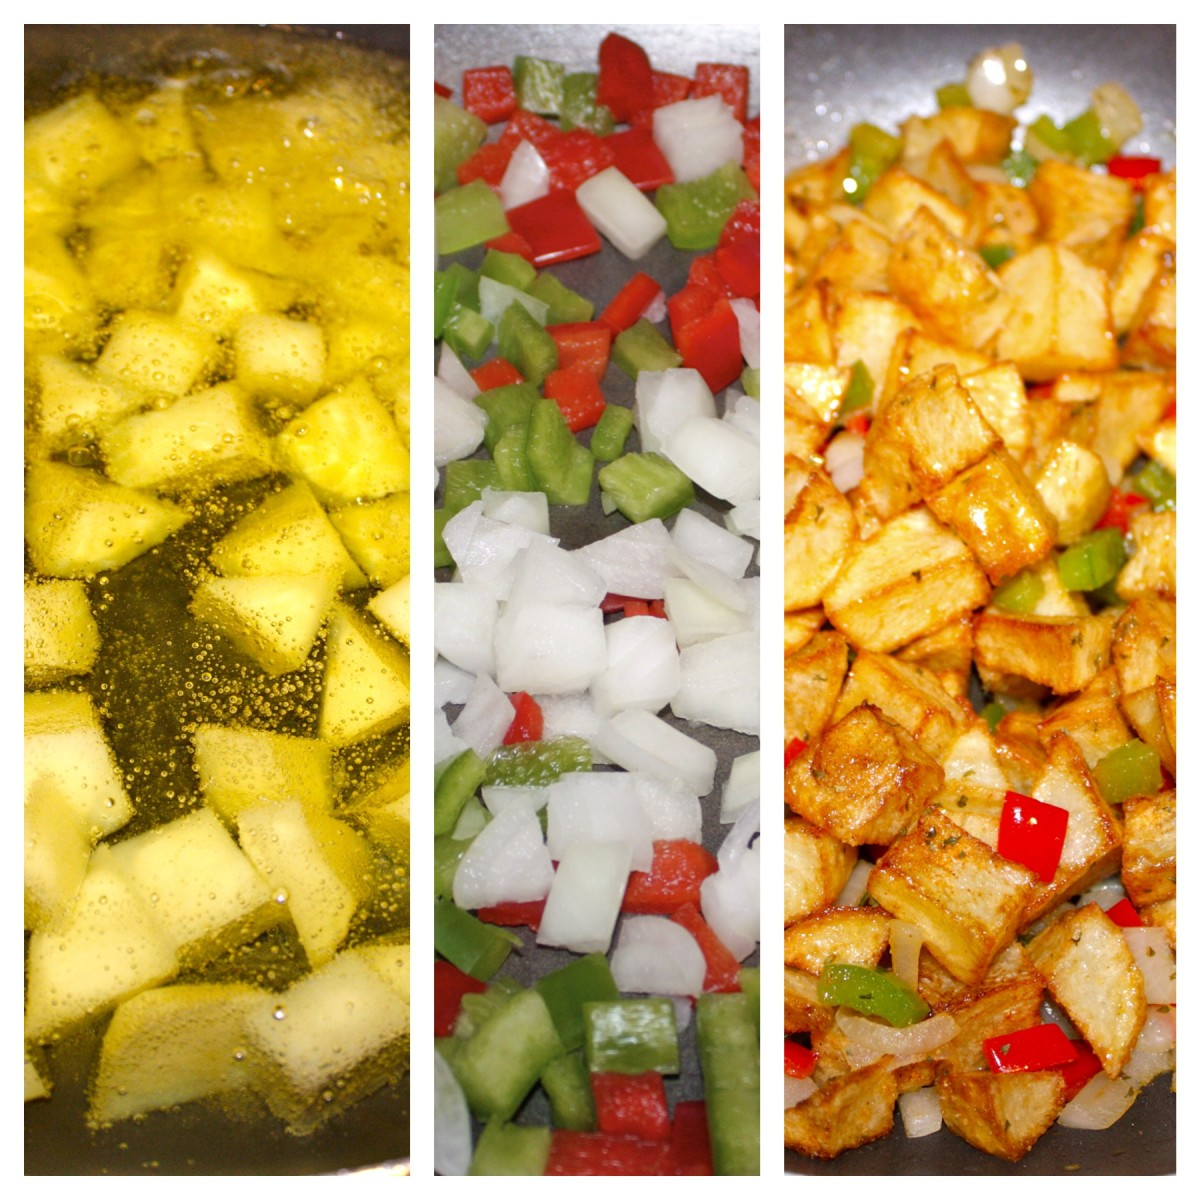 Left: potatoes cooking in Canola oil (Step 1). Center: onion, green bell pepper and red bell pepper sauteing in butter (Step 3). Right: potatoes added to sautéed vegetables, and all spices added mixed well together (Step 4 and 5).